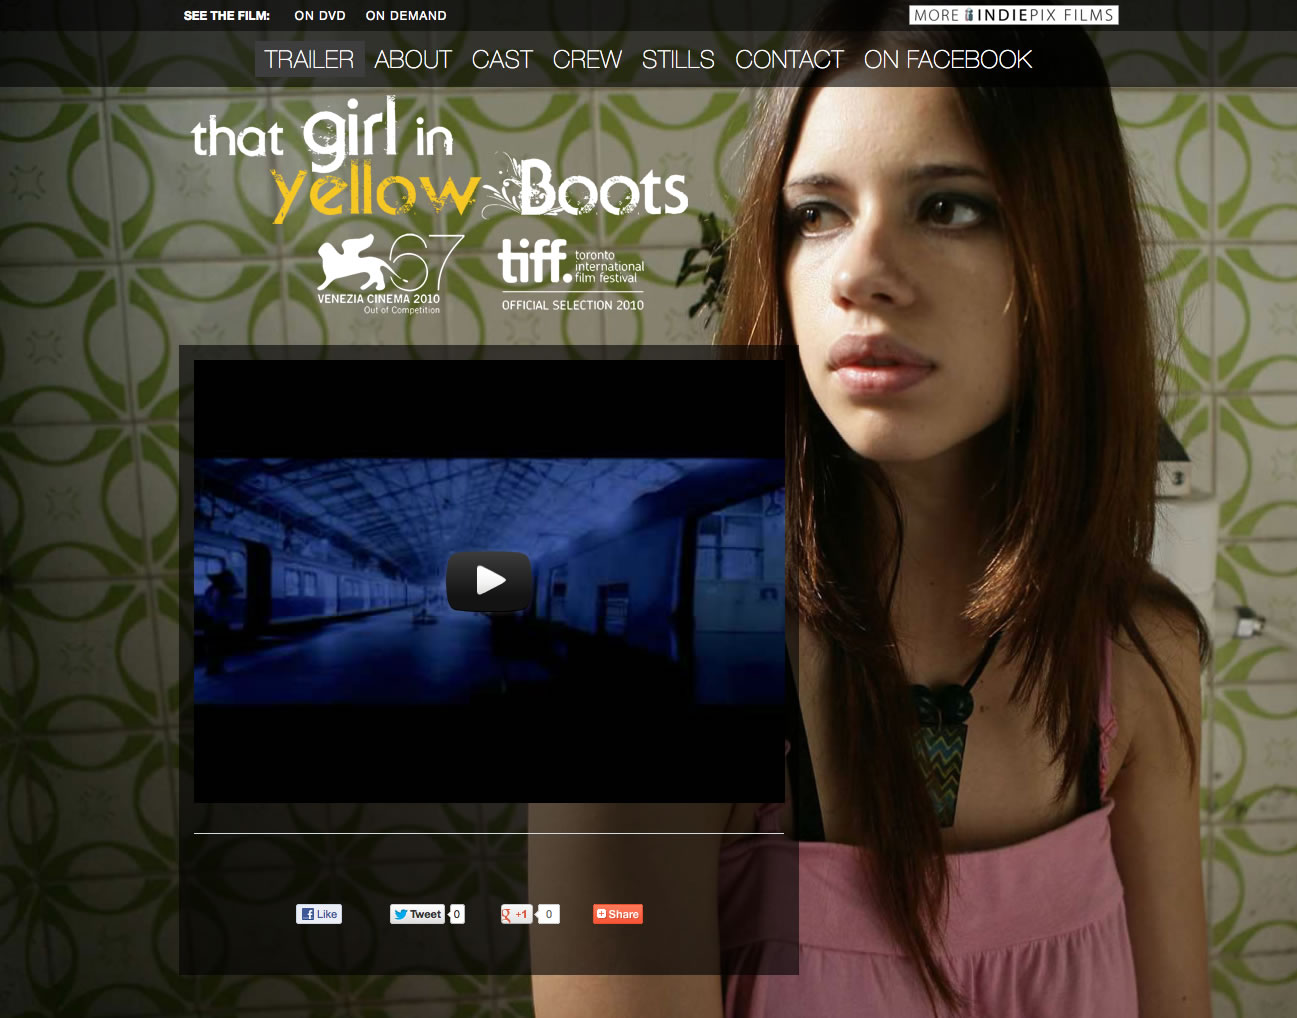 thatgirlinyellowboots